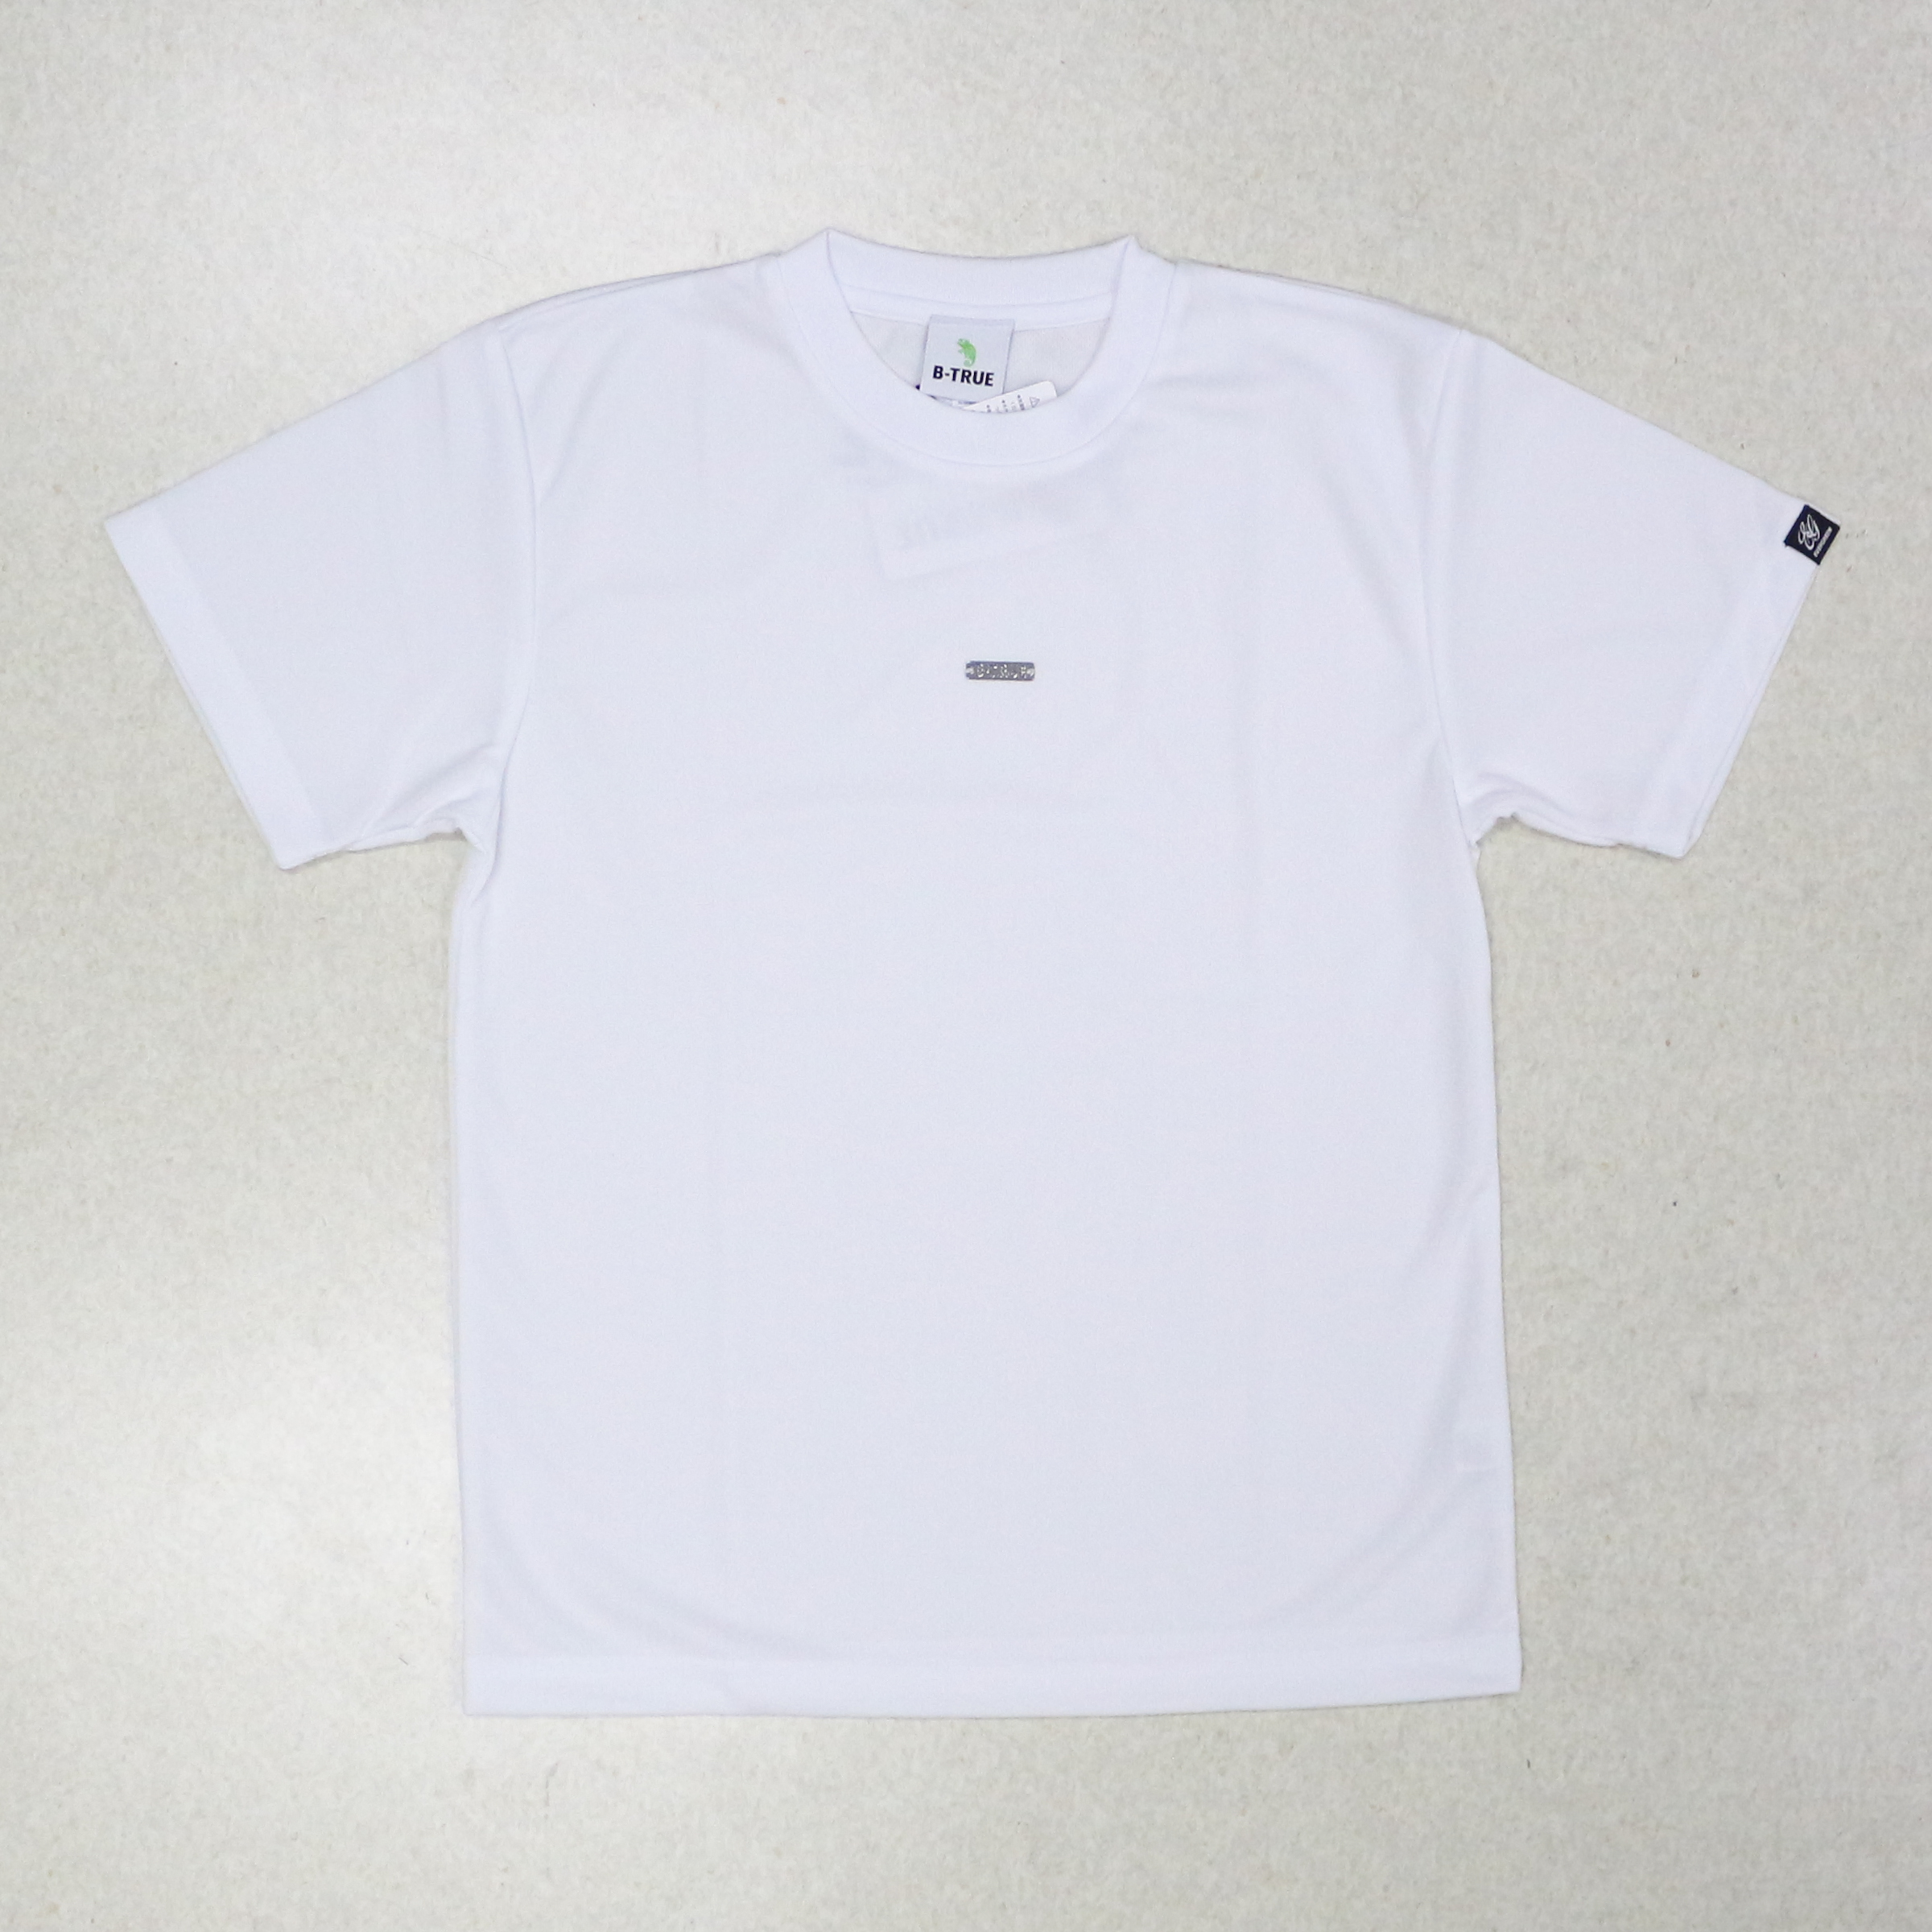 Evergreen T-Shirt Dry Fit Short Sleeve B-True B Type Size 3L White (6536)